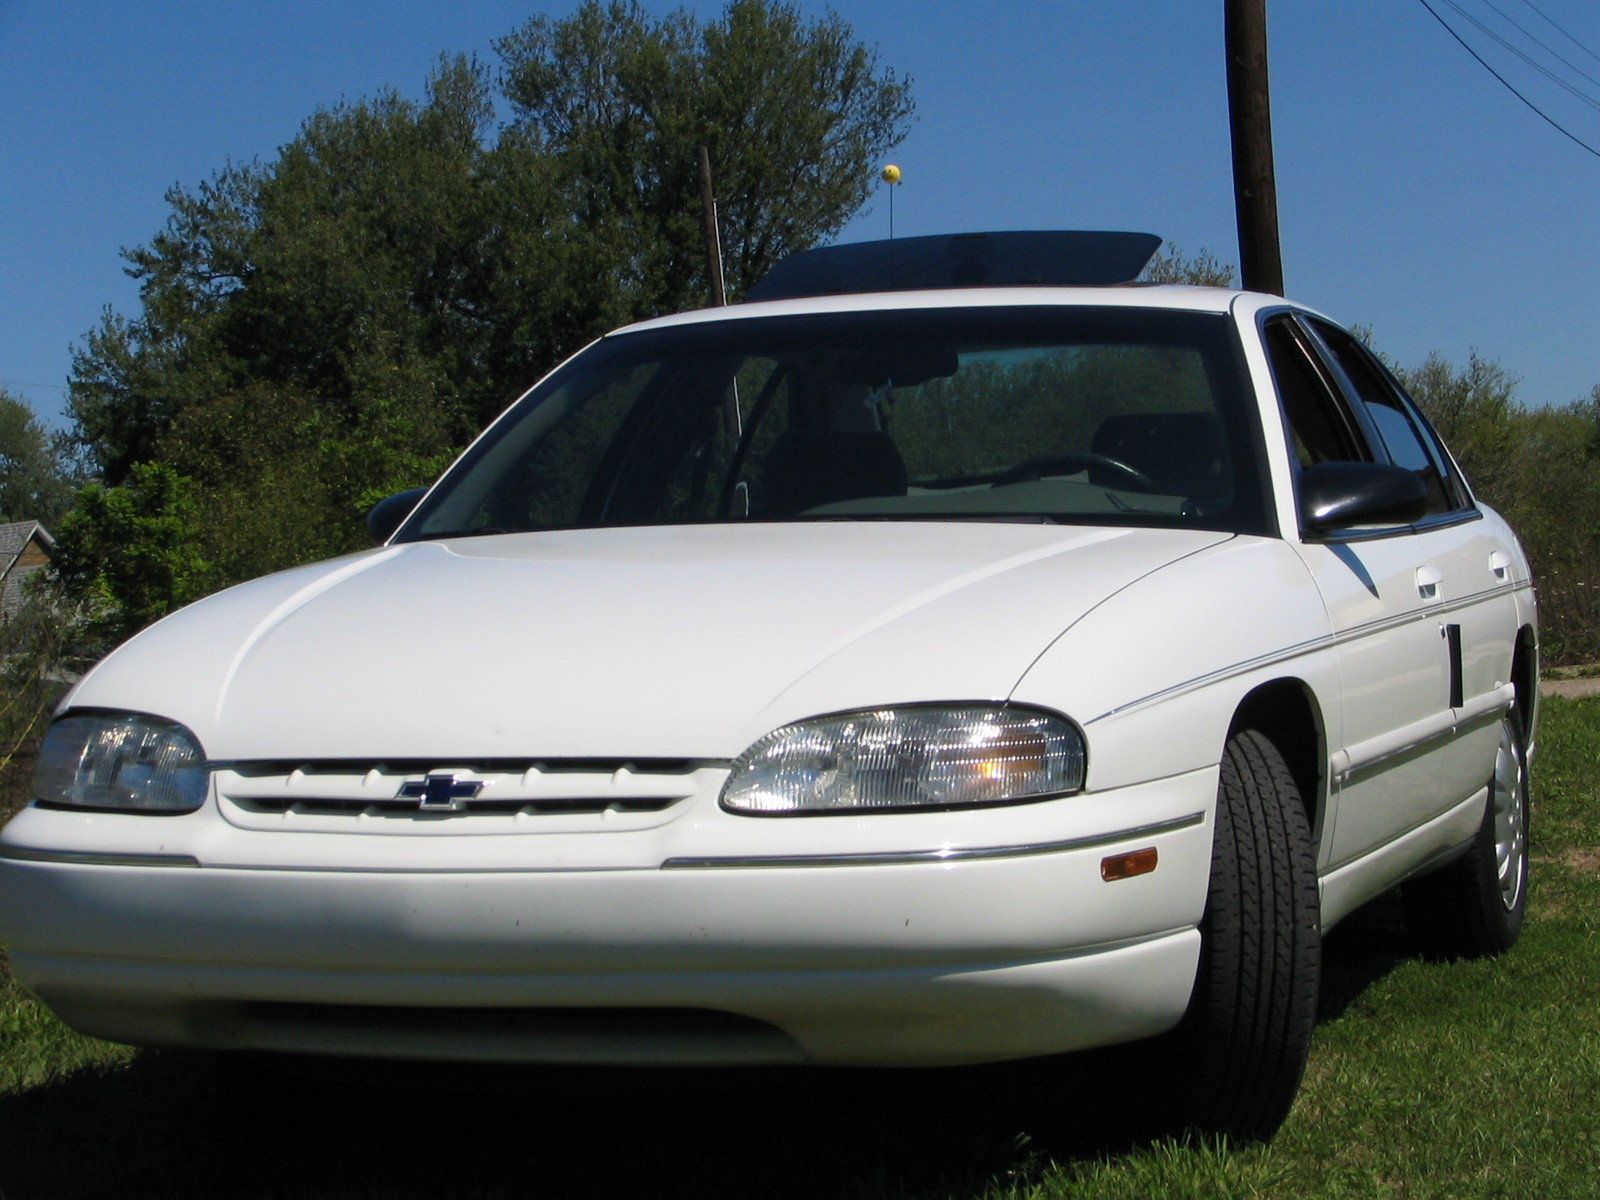 1999 Chevrolet Lumina 4 Dr STD Sedan picture, exterior